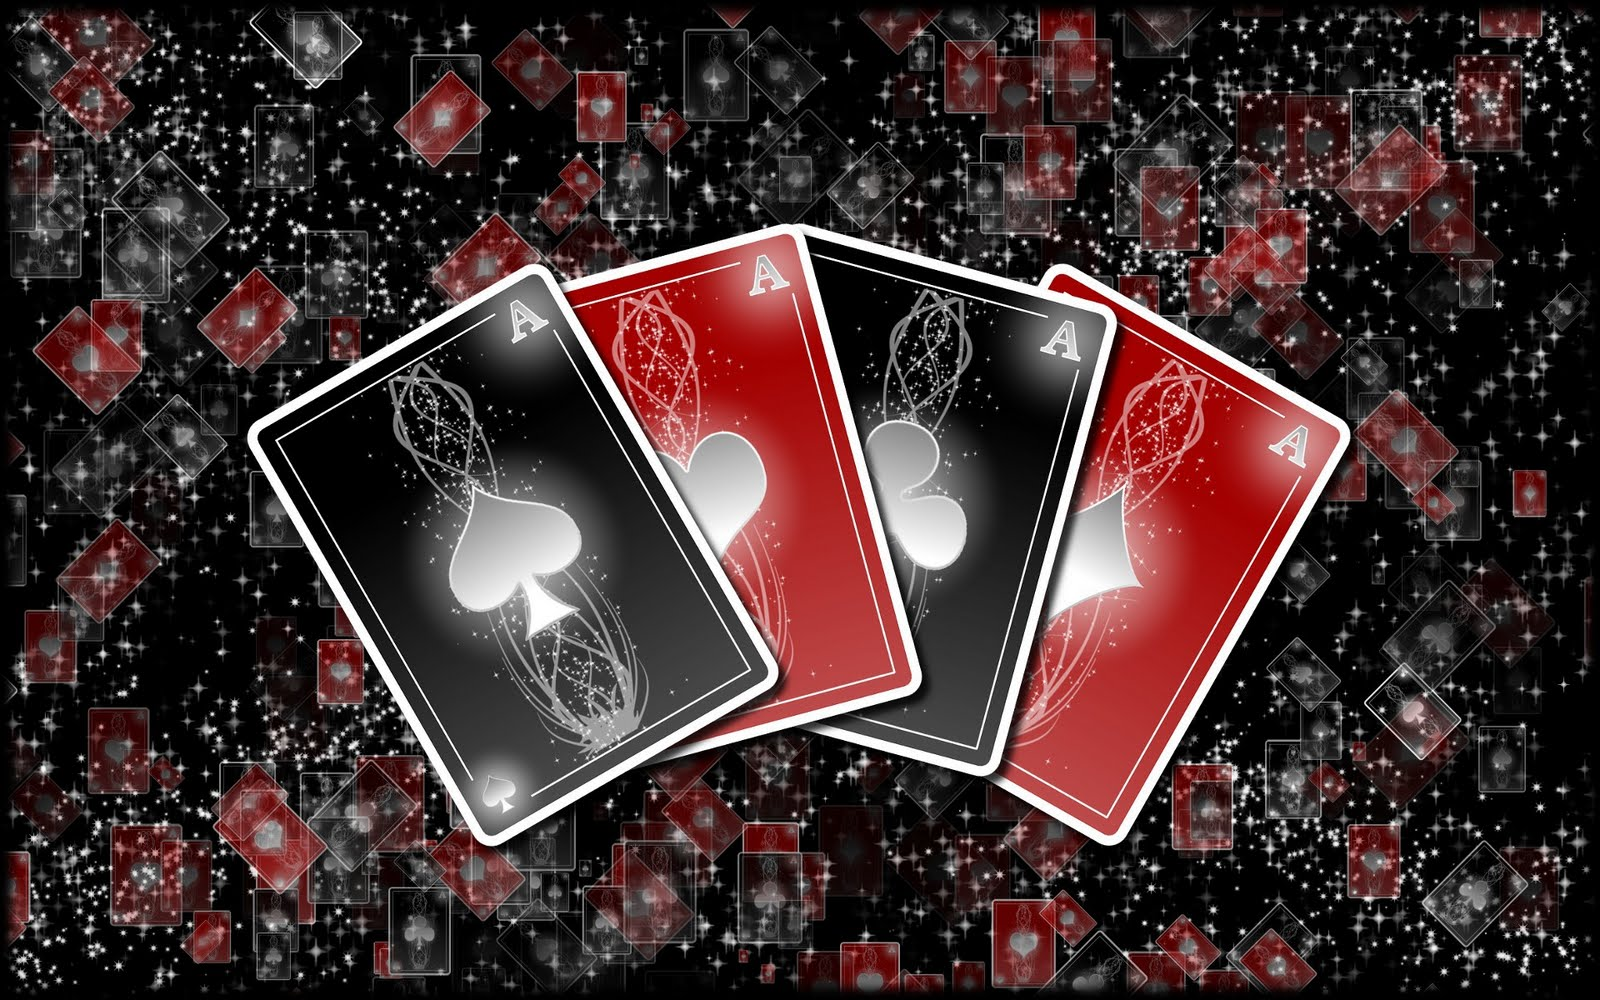 Wallpapers Playing Cards Wallpaper 1600x1000